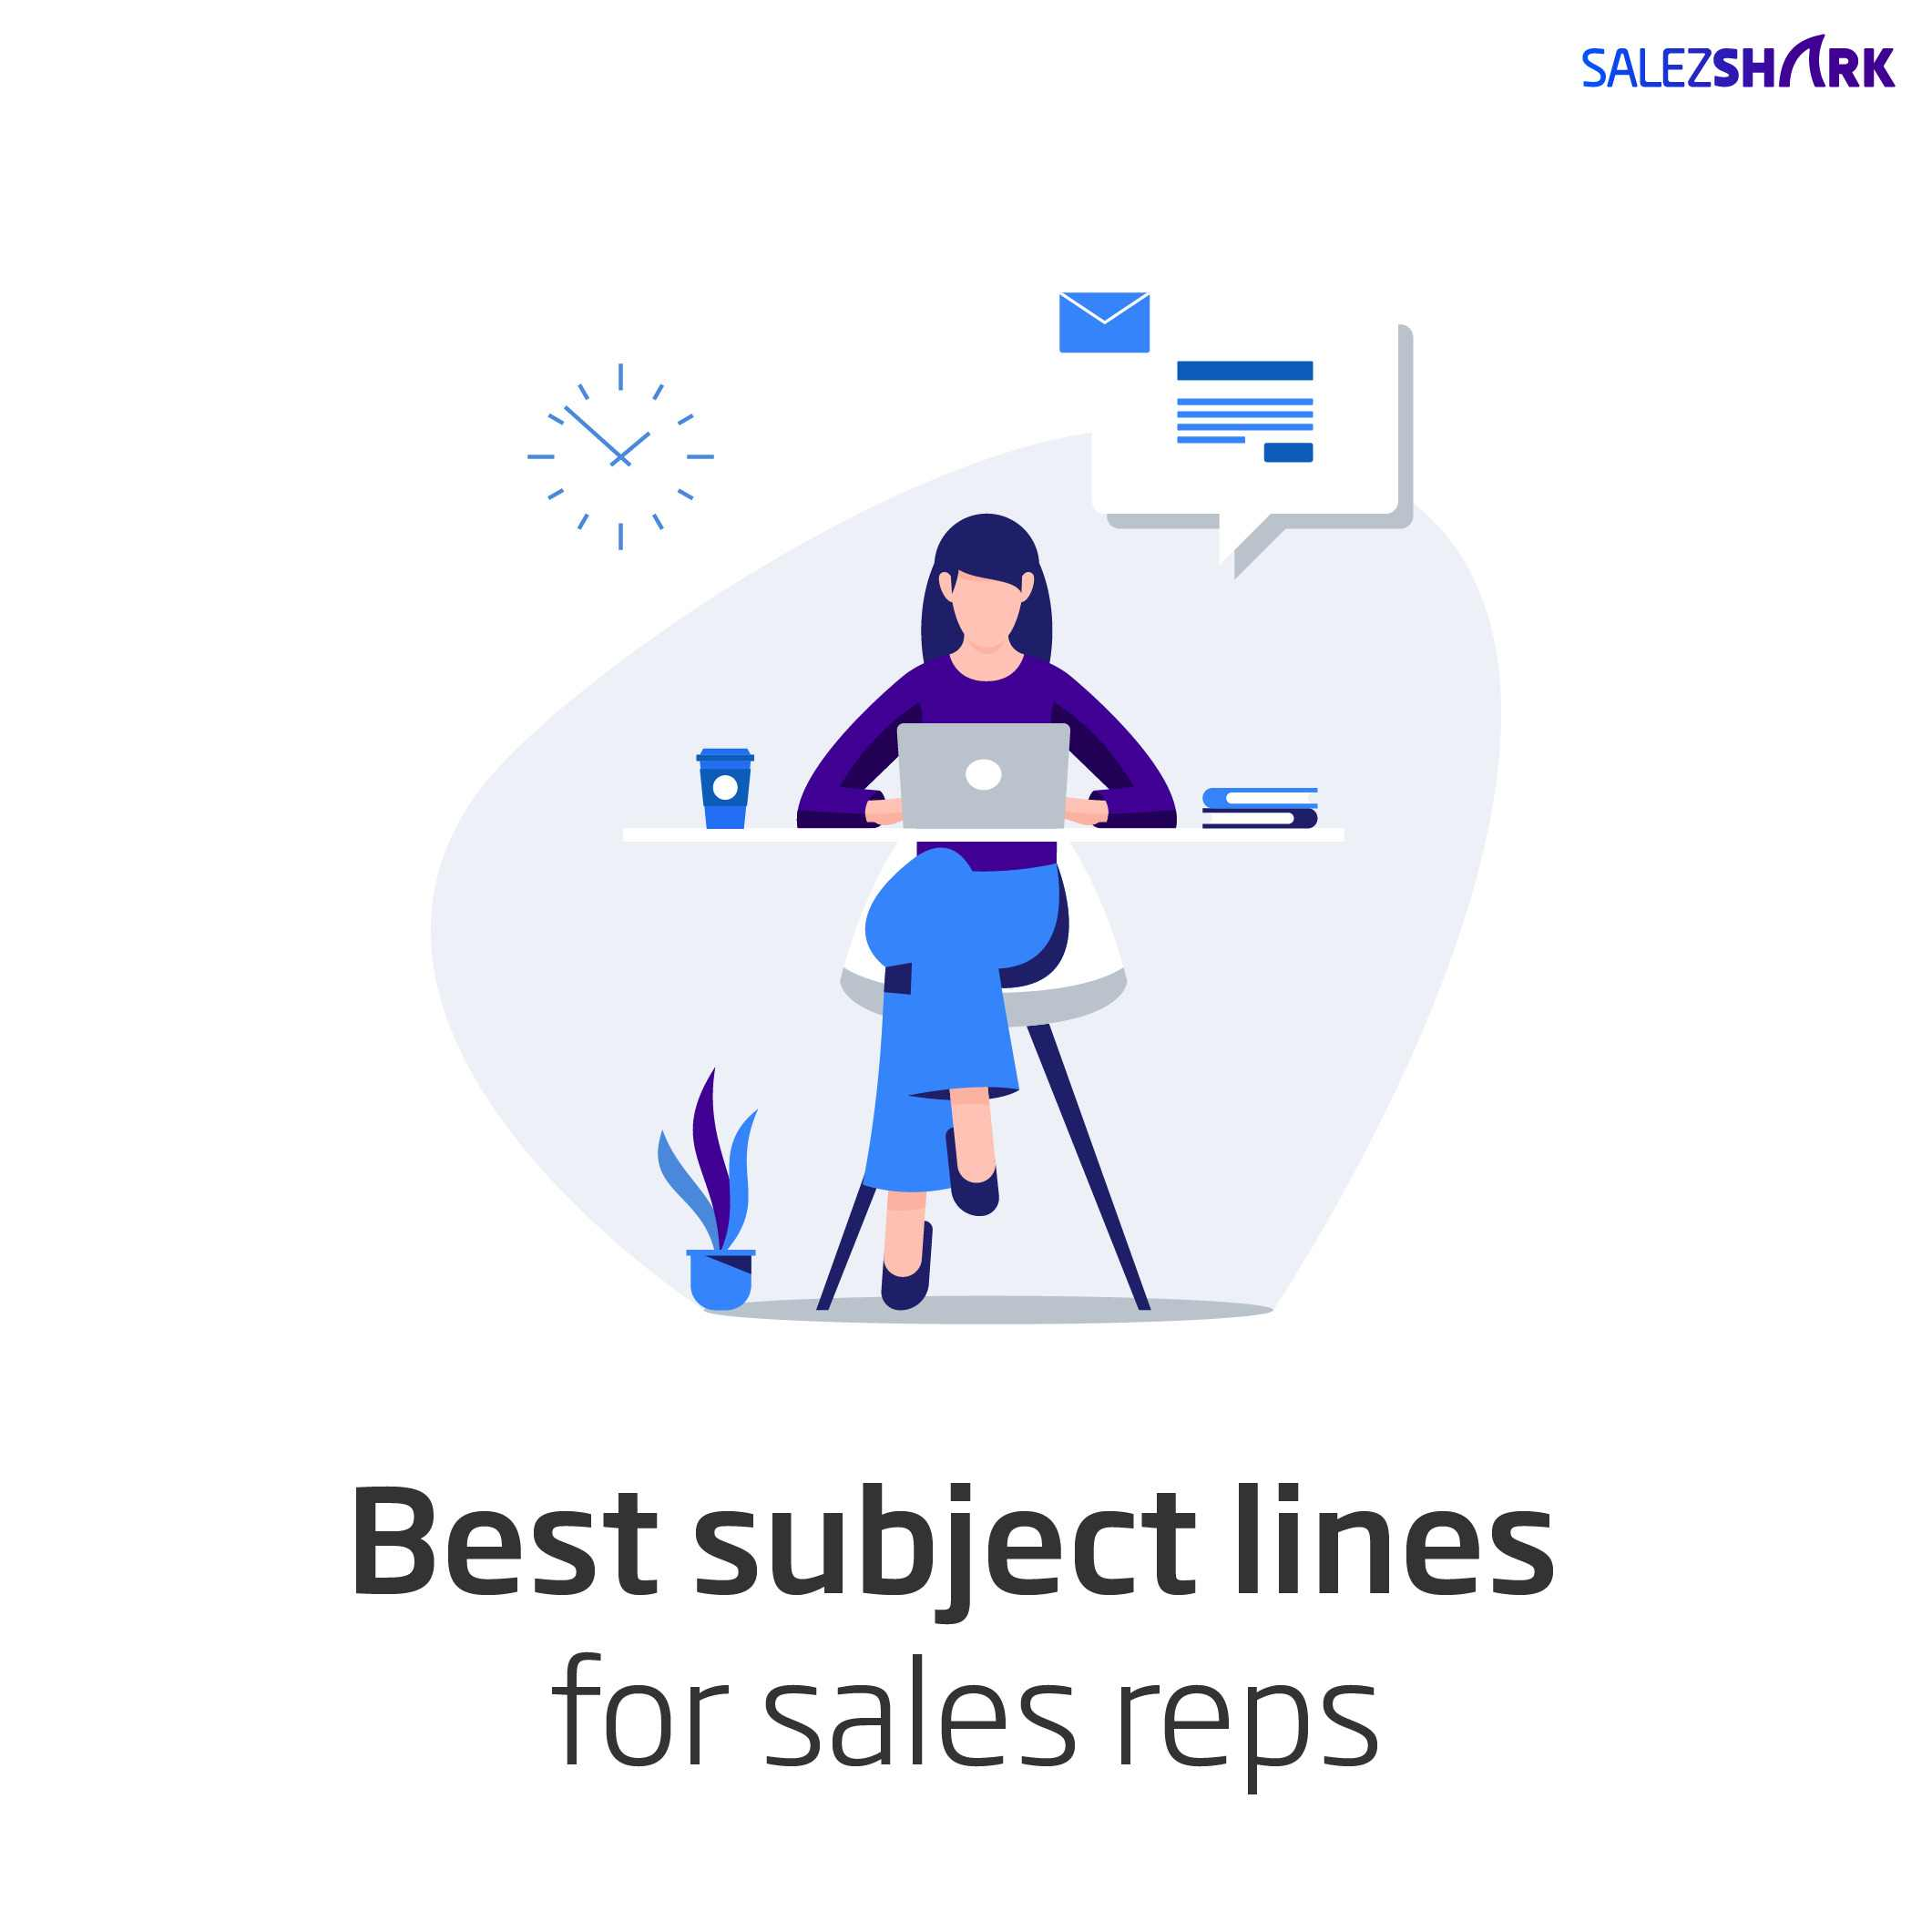 Best Subject Lines for Sales Reps in the Year 2020